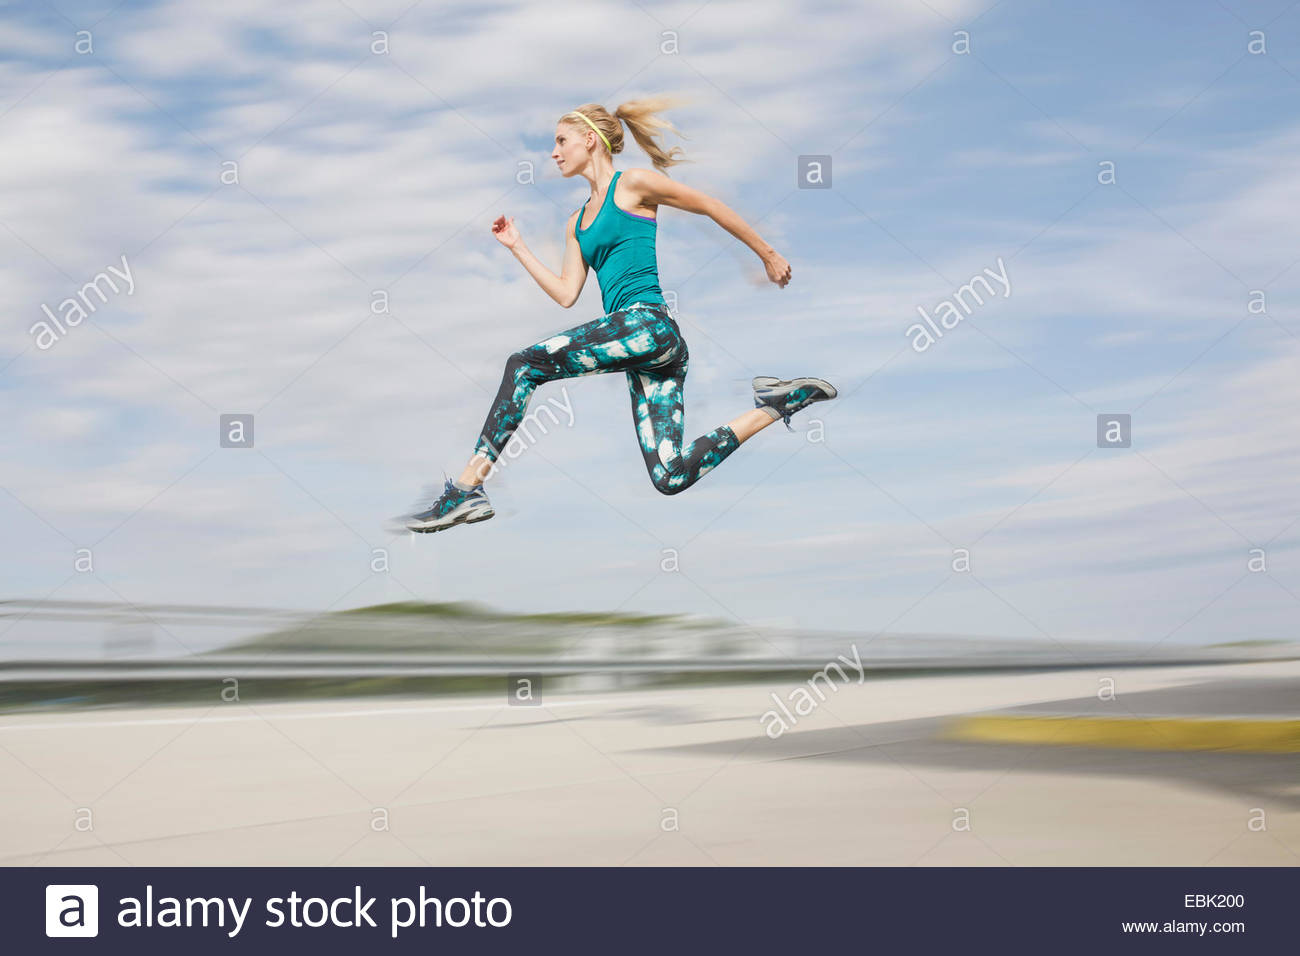 Young woman jumping mid air - Stock Image